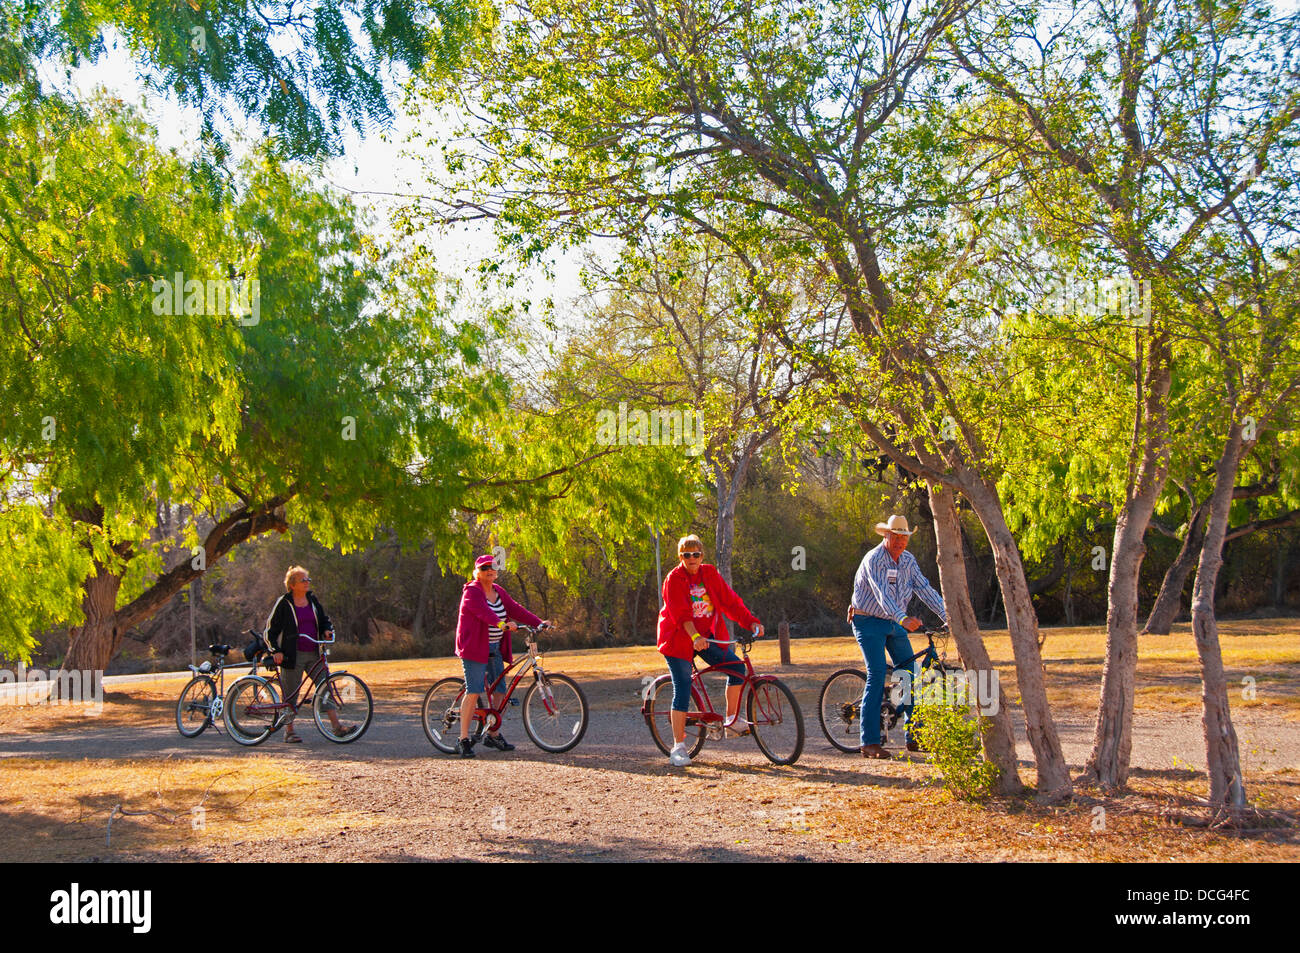 Bicycling on a trail at Bentsen-Rio Grande Valley State Park, Mission, Texas - Stock Image